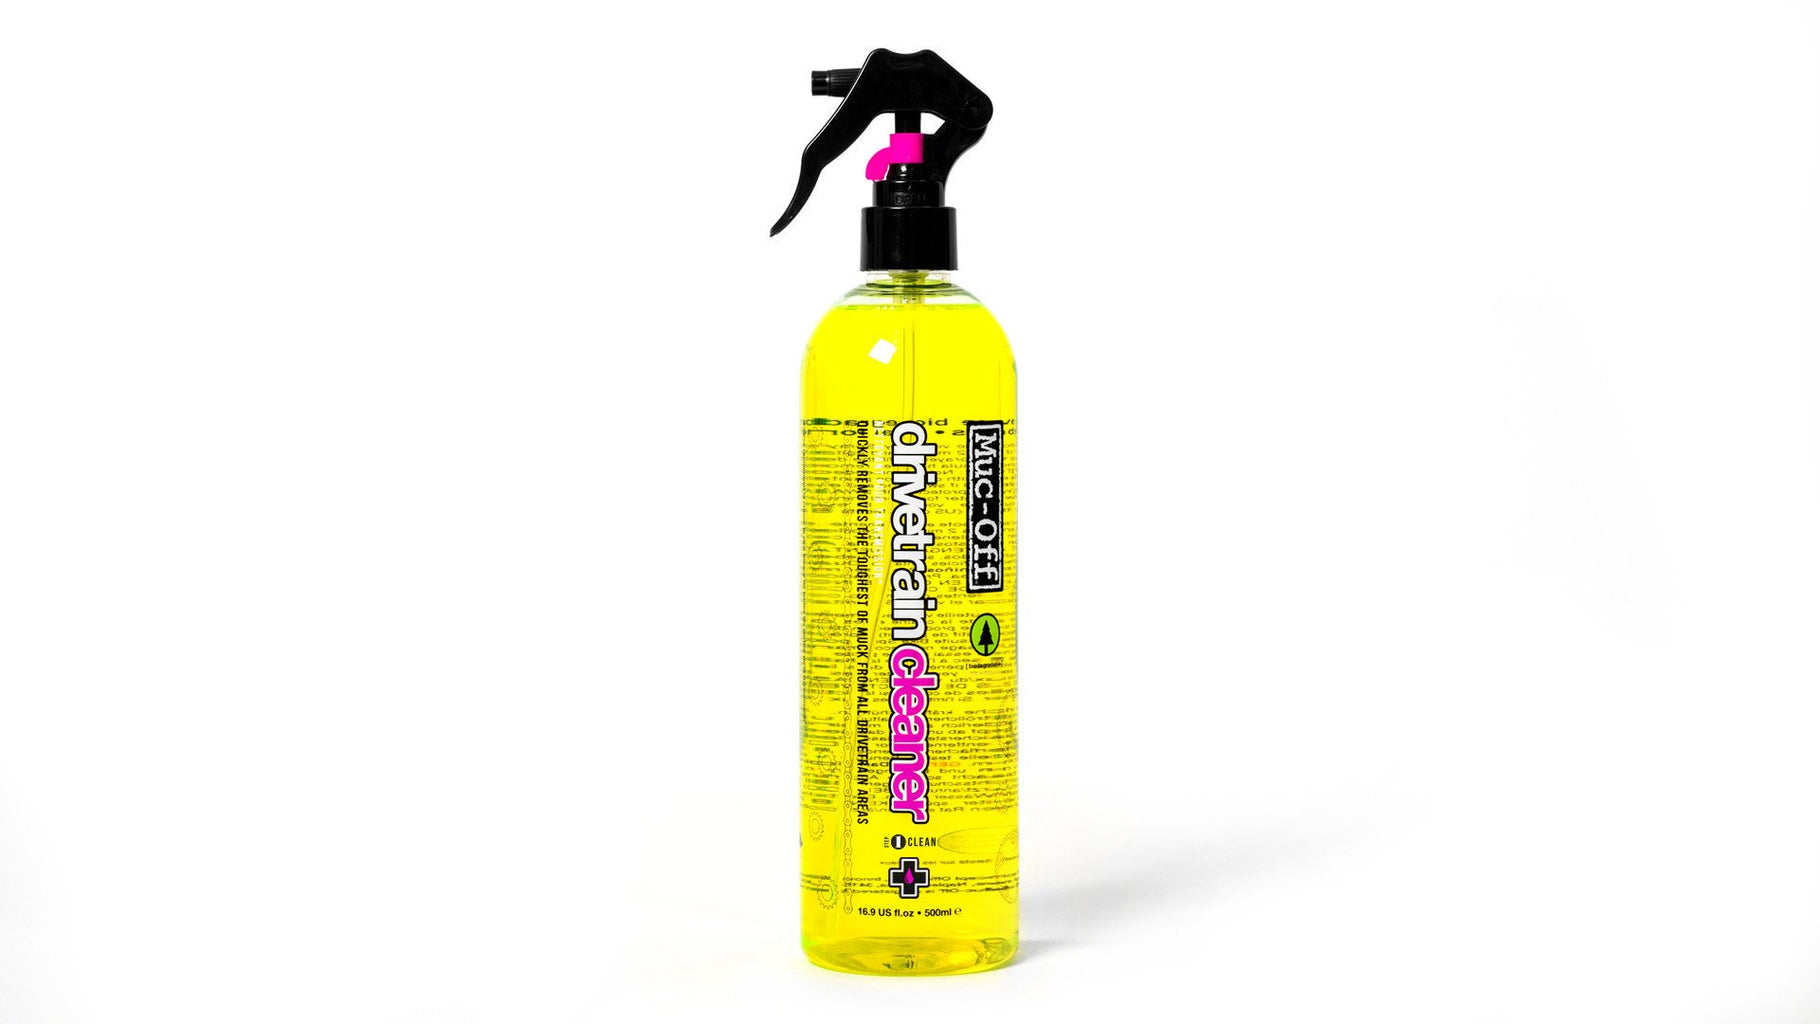 Muc-Off Ultimate Bicycle Cleaning Kit: Toolbox with 10 Pieces - Degreaser / Cleaner - Ultimate Bicycle Cleaning Kit